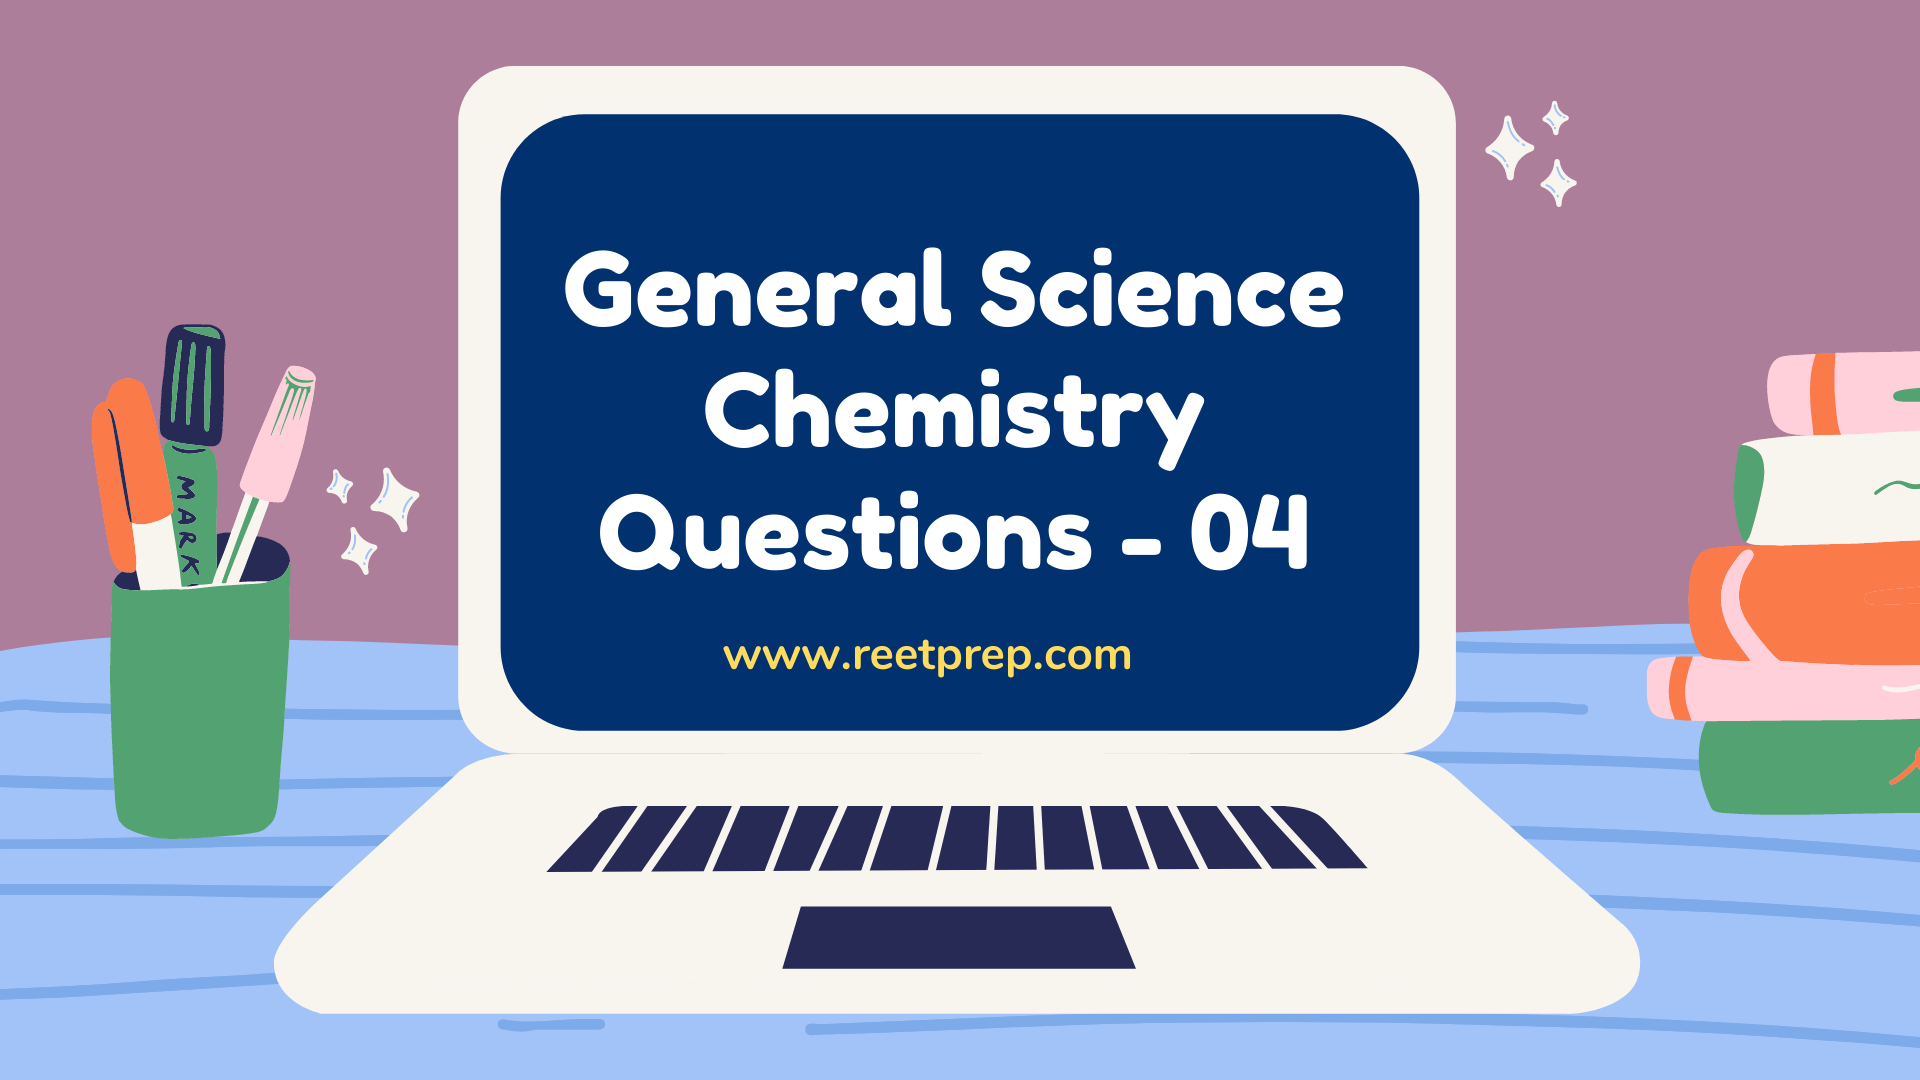 General Science Chemistry Questions - 04